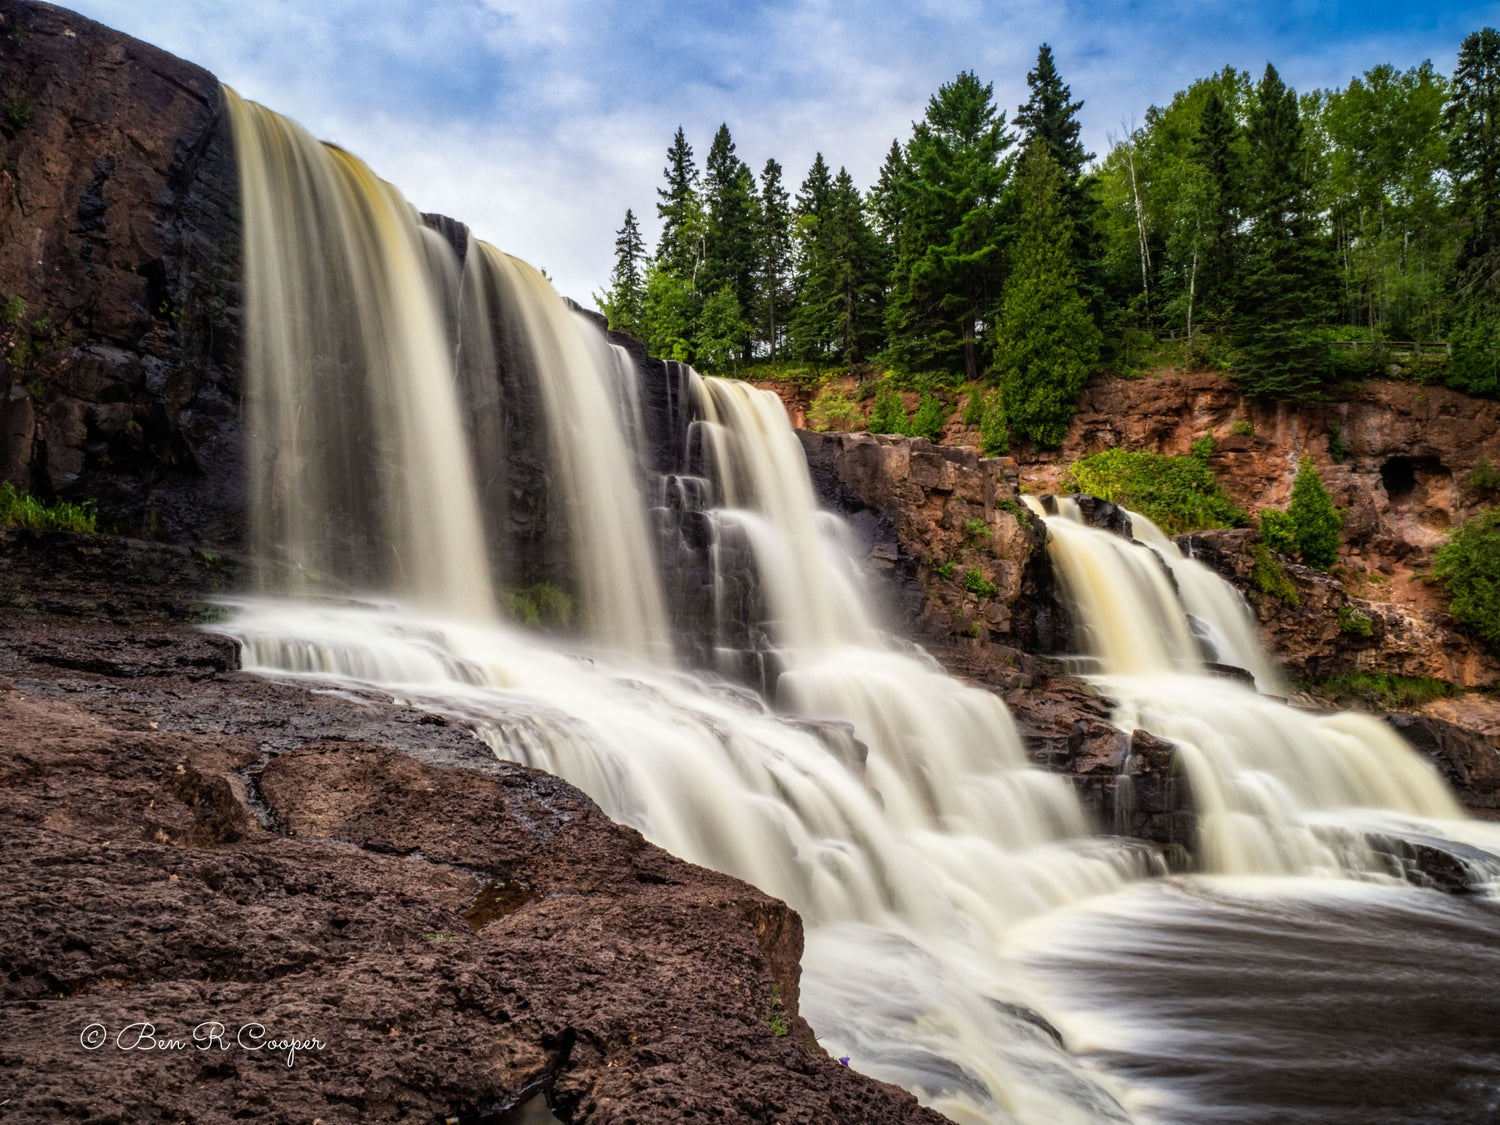 Afternoon at Gooseberry Falls